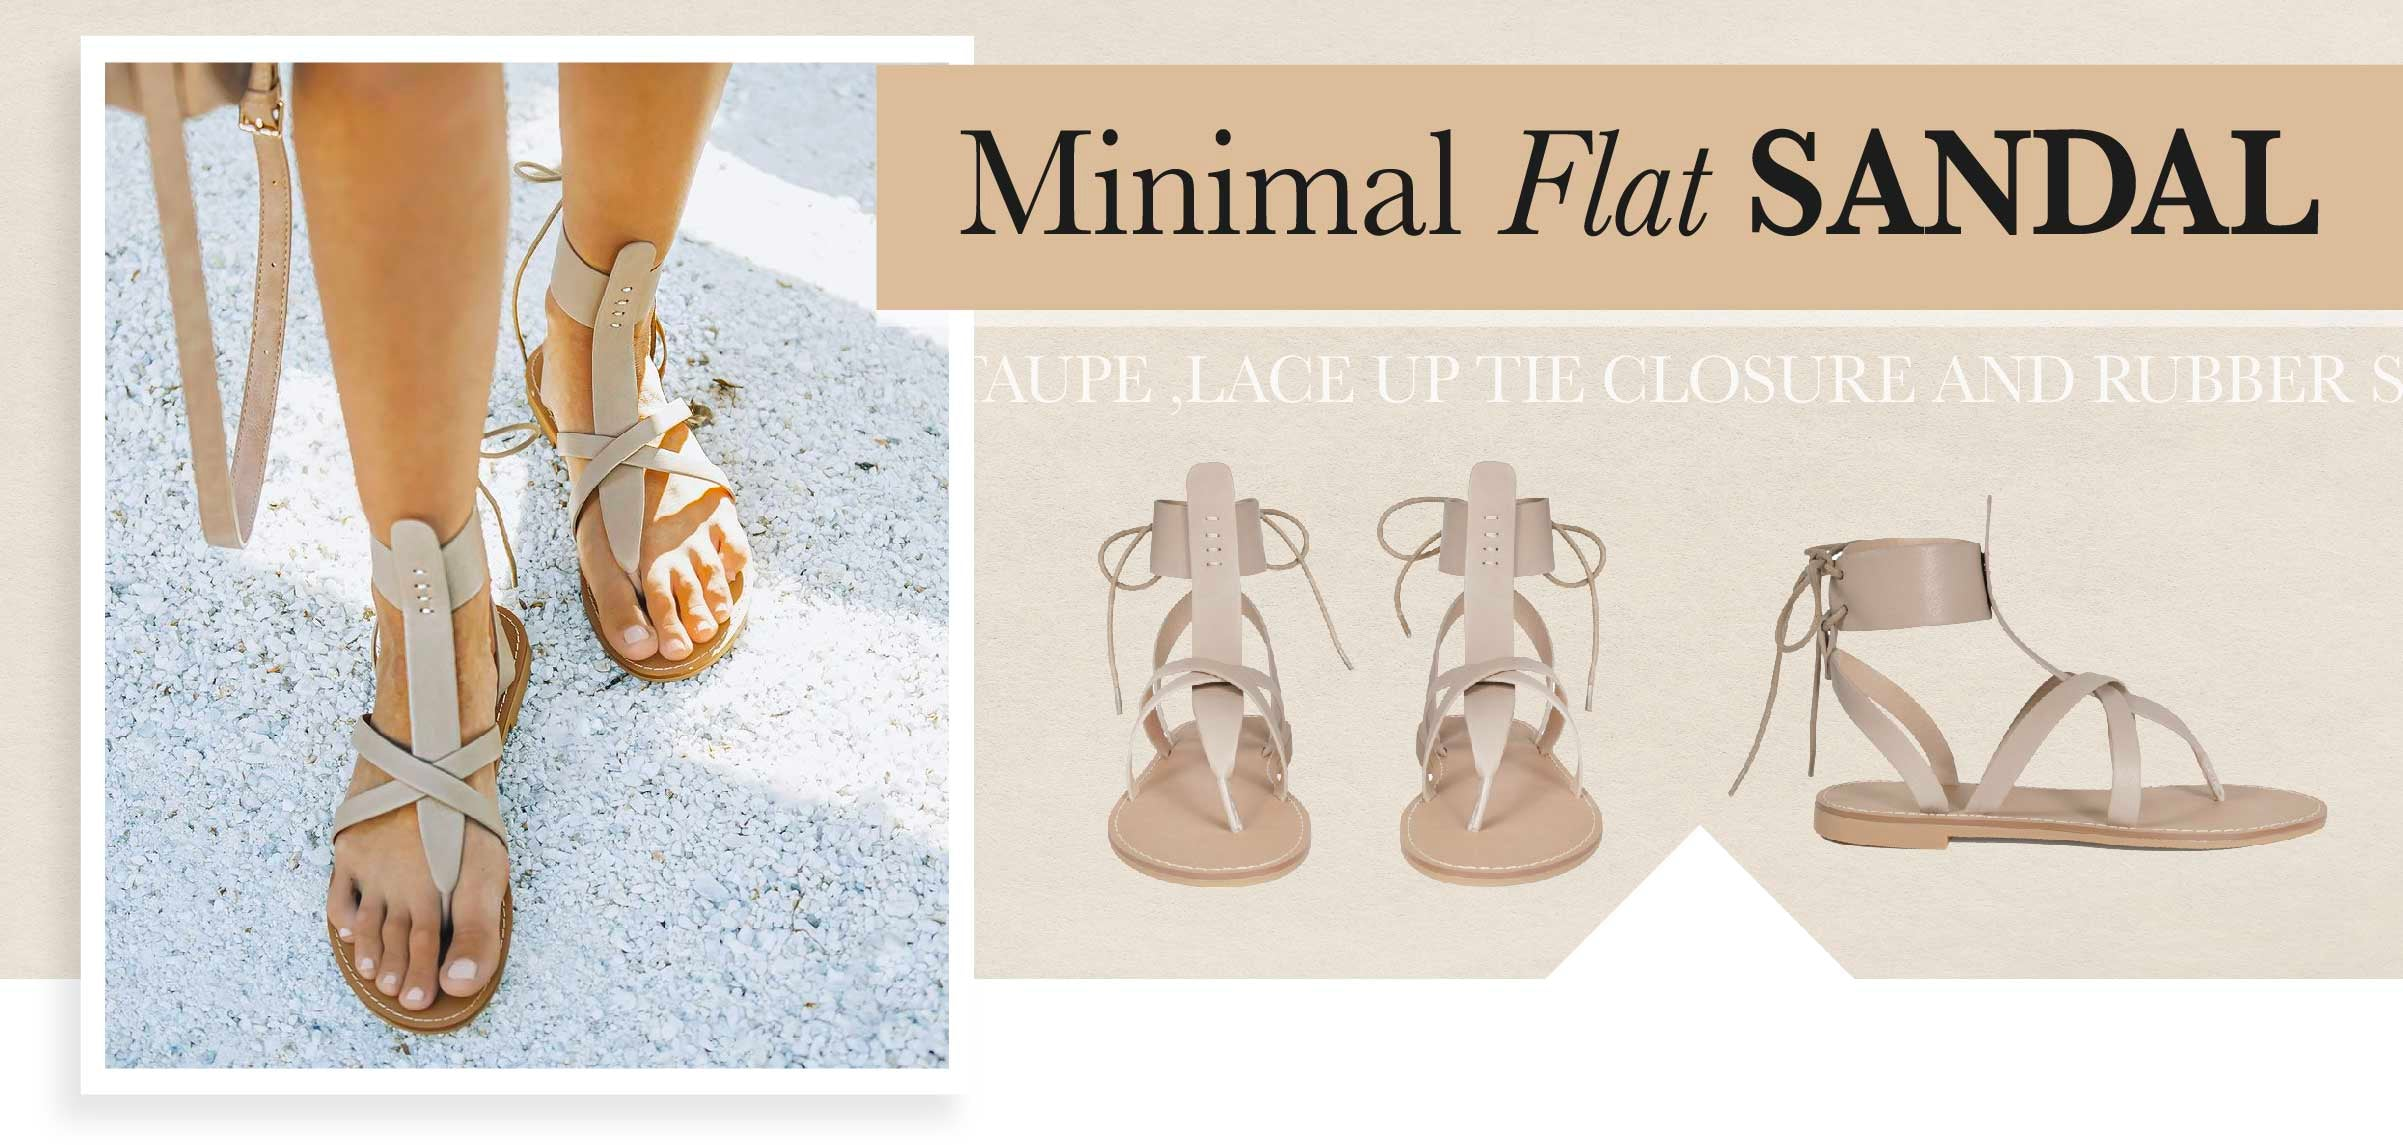 Minimal is having a moment right now, and we're here for it!  A pair of barely-there sandals give off the ultimate casual weekend vibes. All you need to complete the look are perfectly pedicured toenails. Treat yourself!